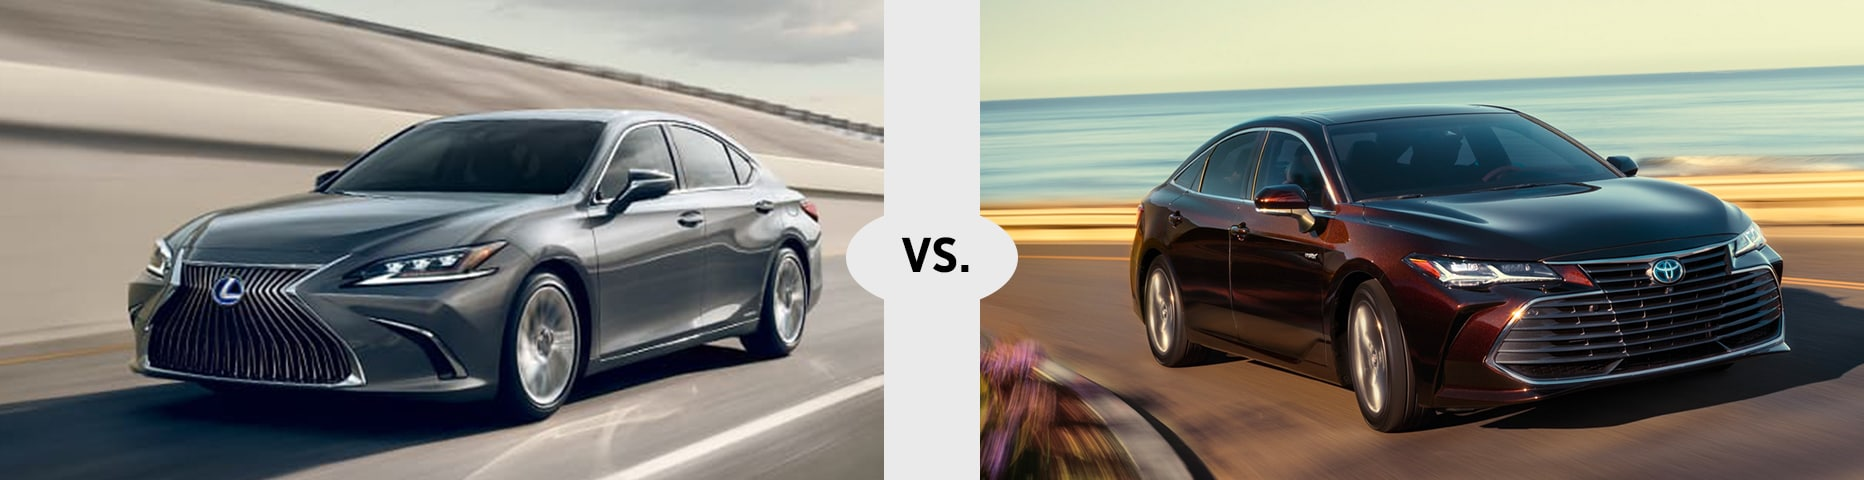 2020 Lexus ES vs. 2019 Toyota Avalon